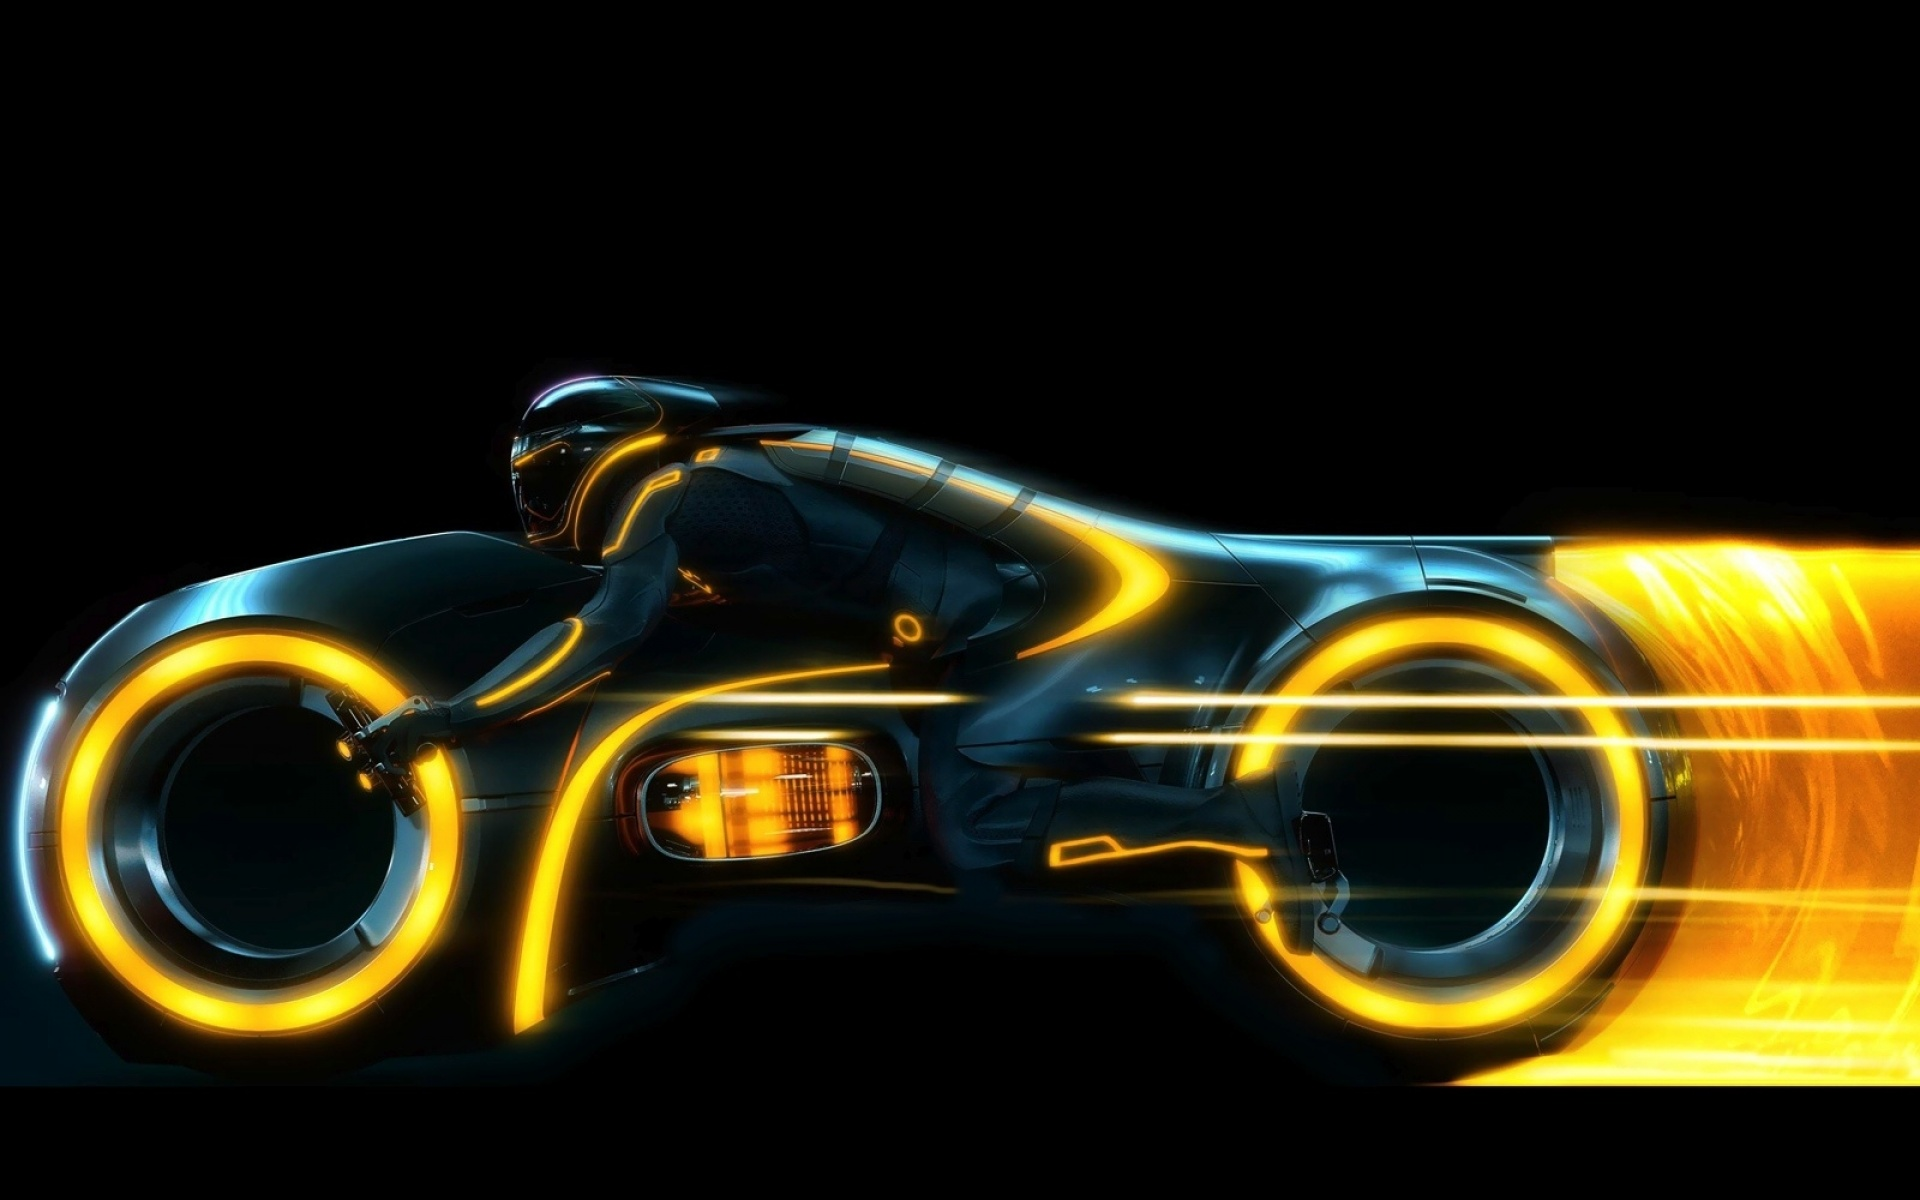 TRON Legacy Full HD Wallpaper And Background Image